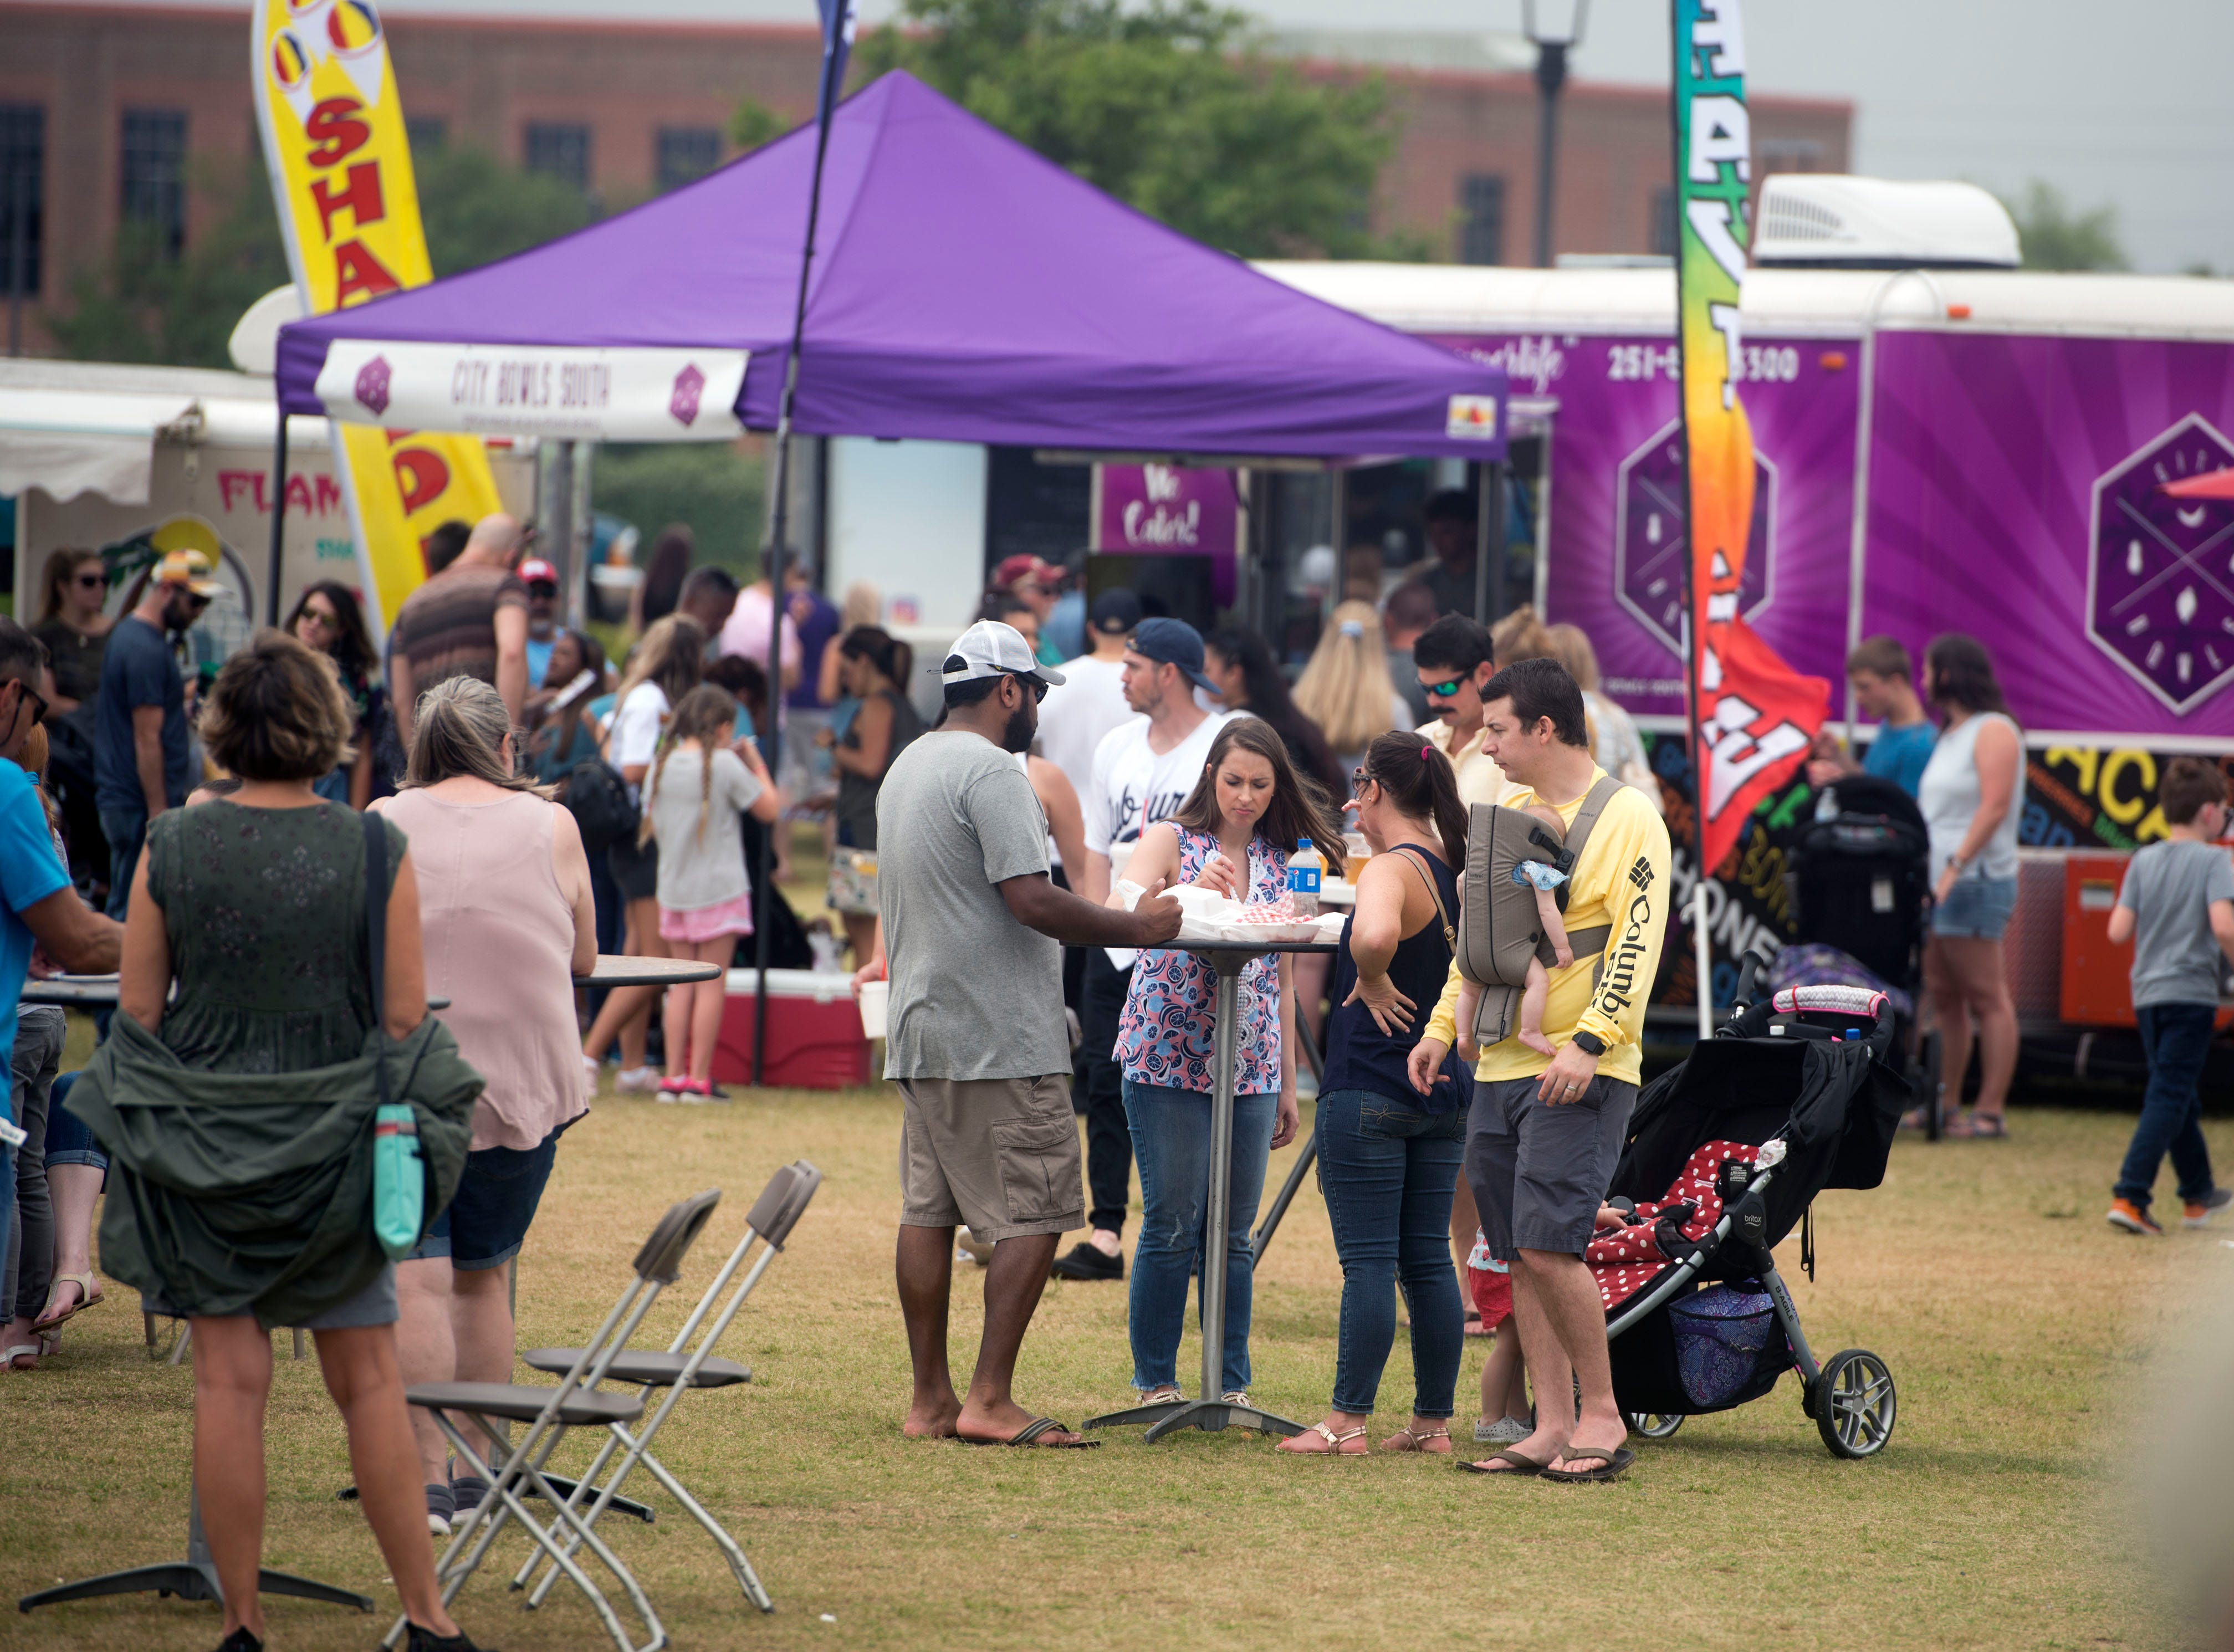 Foodies and families take in the many food choices Saturday, April 6, 2019 during the Pensacola Habitat for Humanity's fourth annual Food Truck Festival at Community Maritime Park.